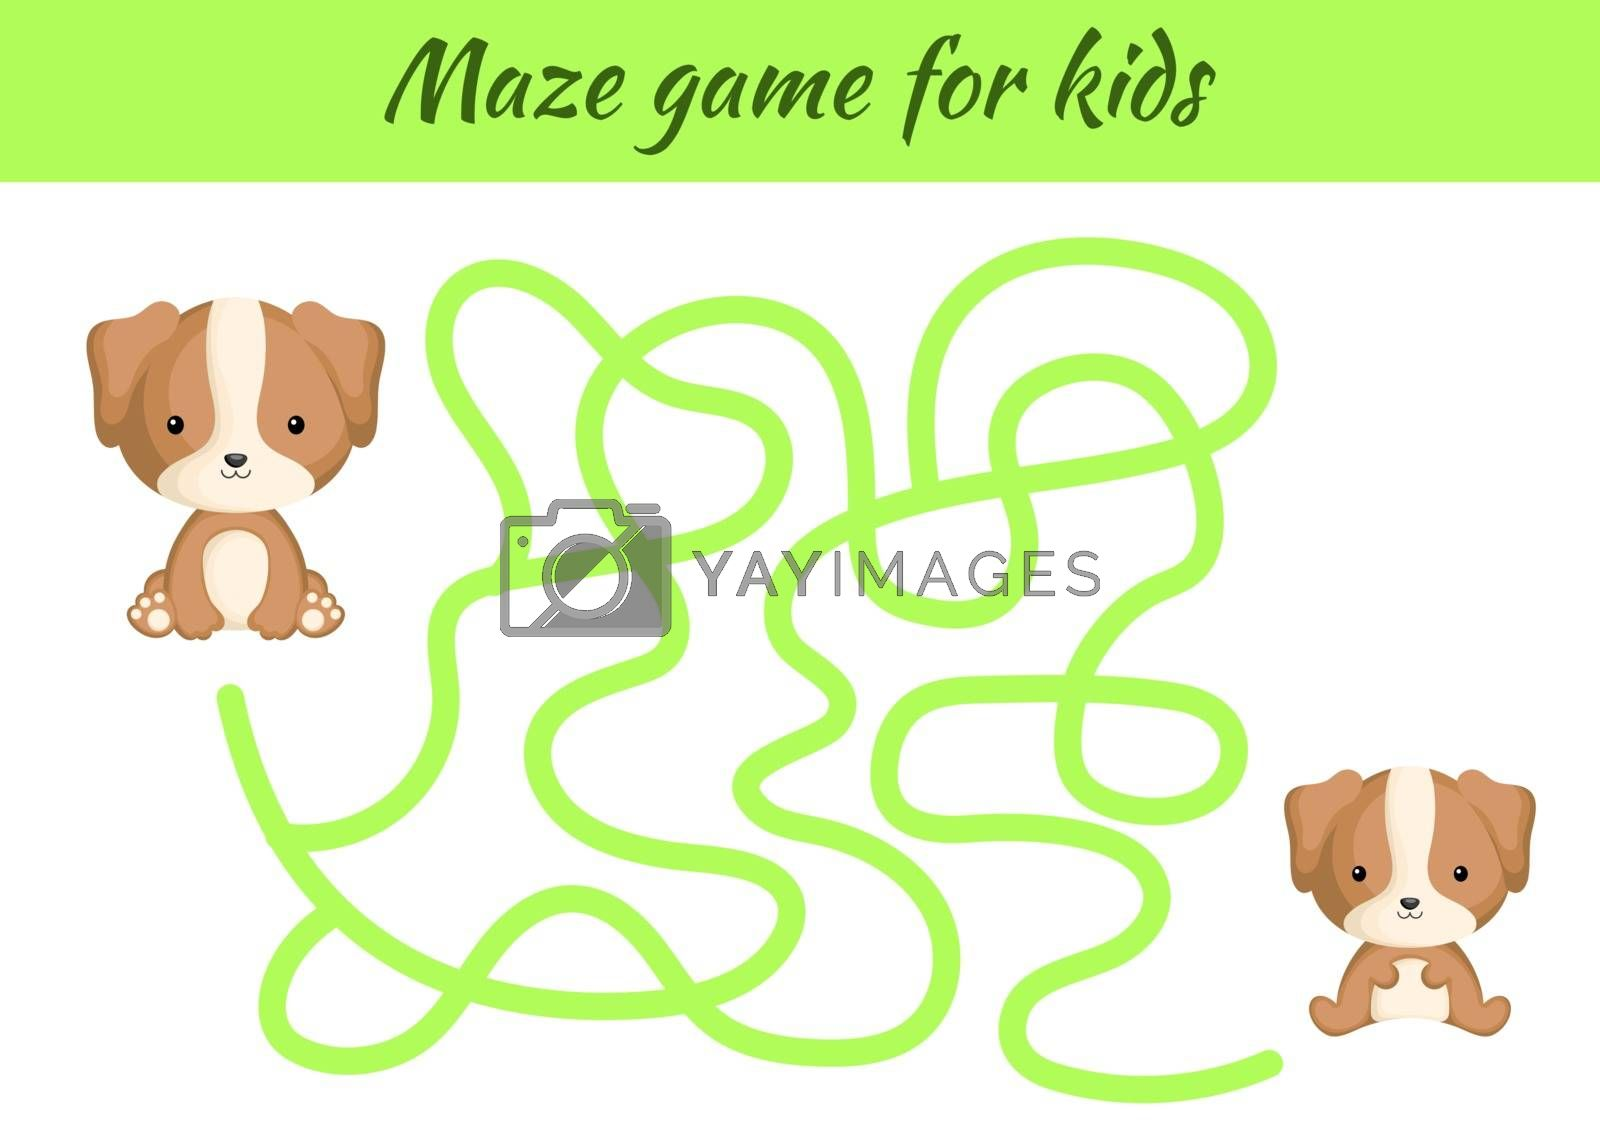 Funny maze or labyrinth game for kids. Help mother find path to baby. Education developing worksheet. Activity page. Cartoon dog characters. Riddle for preschool. Color vector stock illustration.